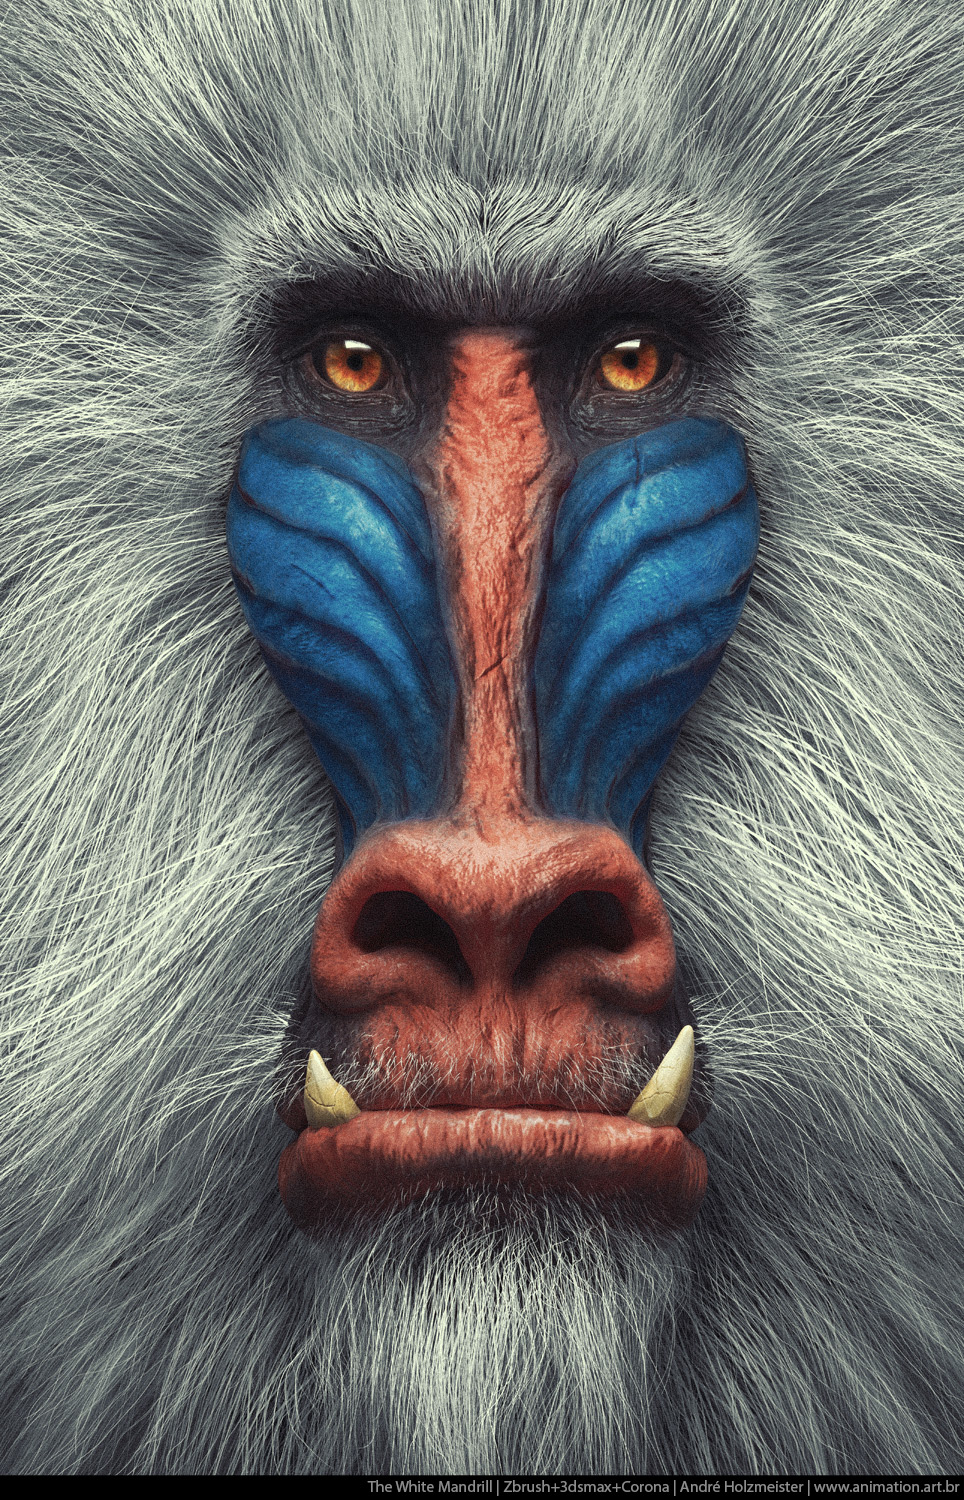 Andholzmeister the white mandrill 1 8993aa83 vl9n